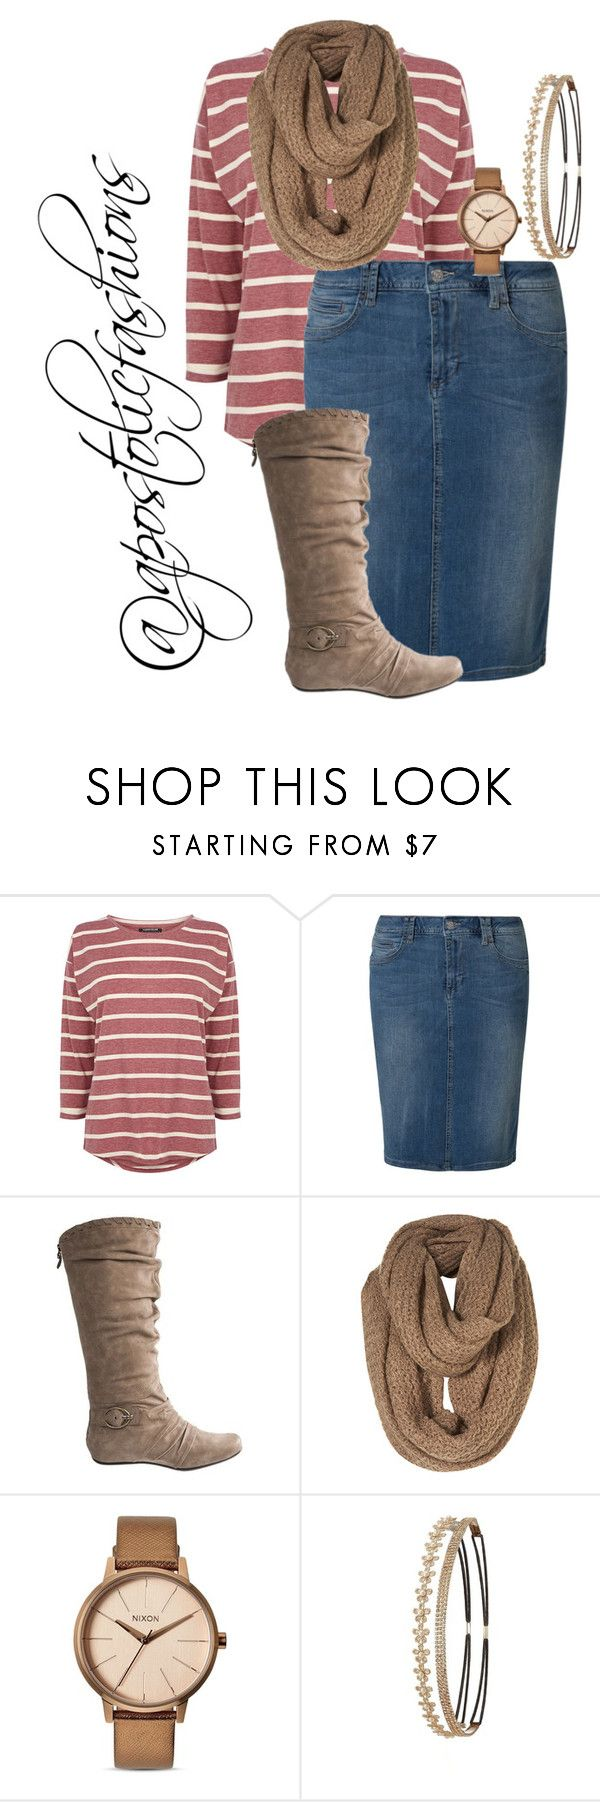 """Apostolic Fashions #1563"" by apostolicfashions ❤ liked on Polyvore featuring Warehouse, Bogner, Nixon, Charlotte Russe, modestlykay and modestlywhit"